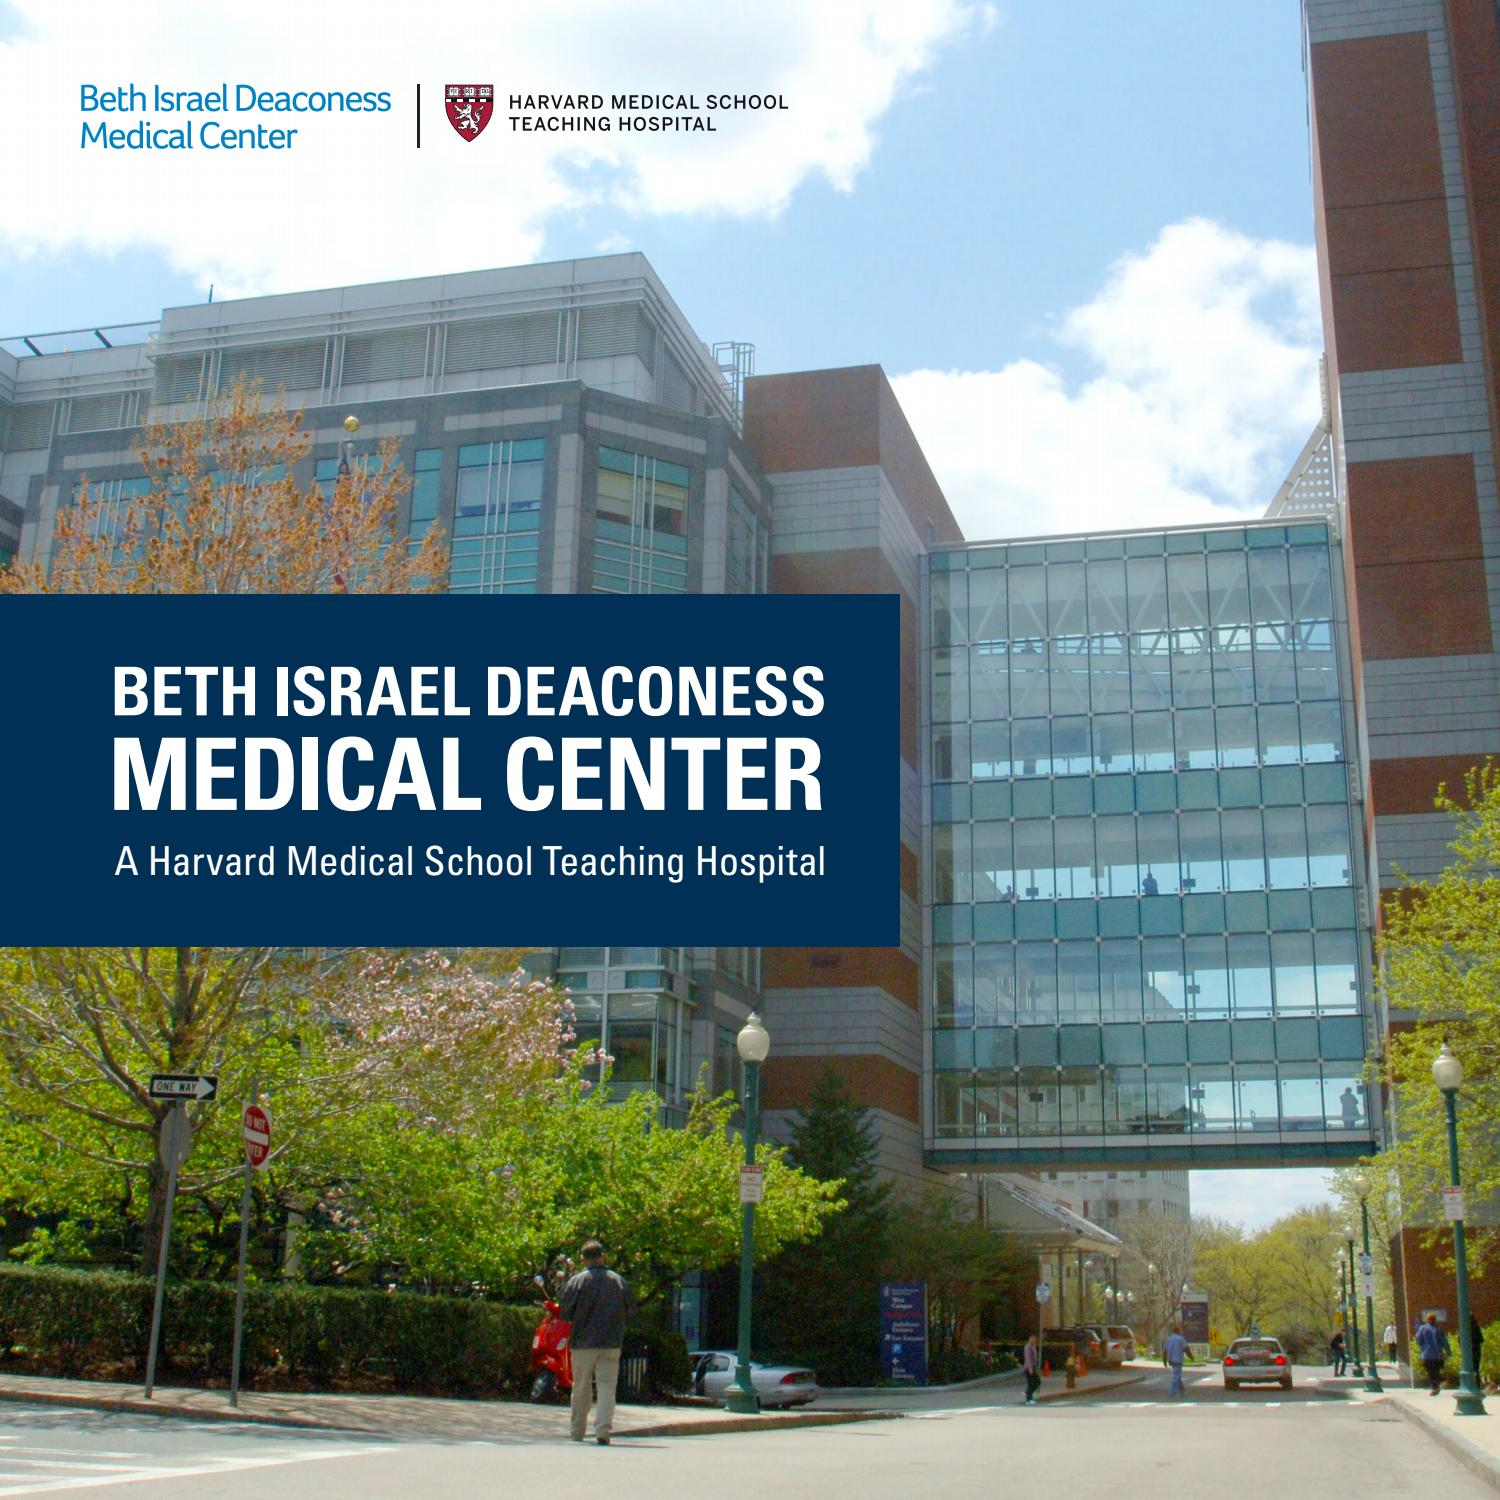 Beth Israel Deaconess Medical Center Overview By Bidmc Issuu